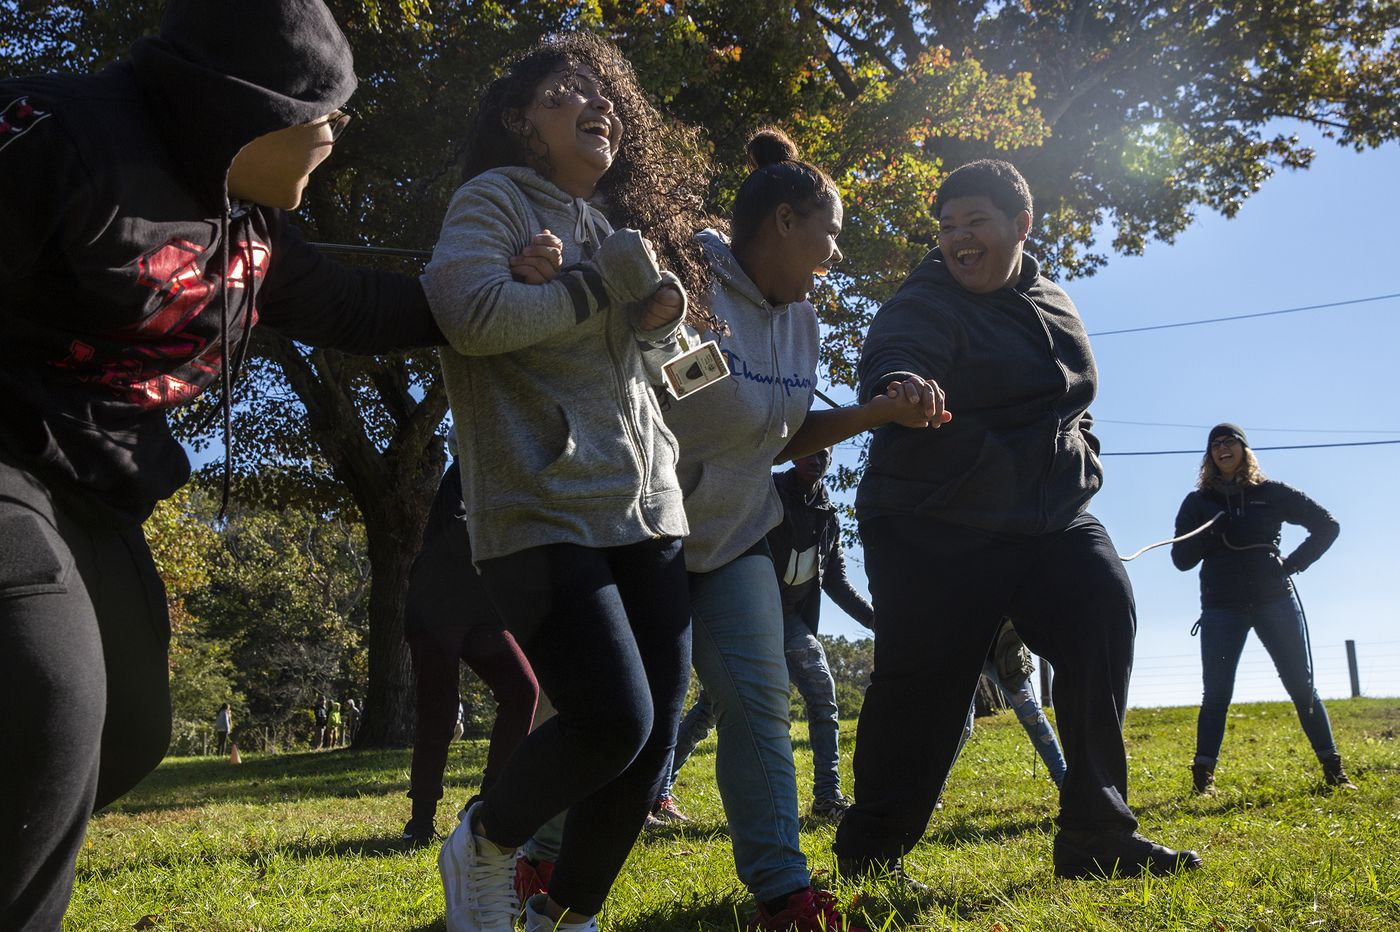 To bolster academics, Philly schools turning to the outdoors